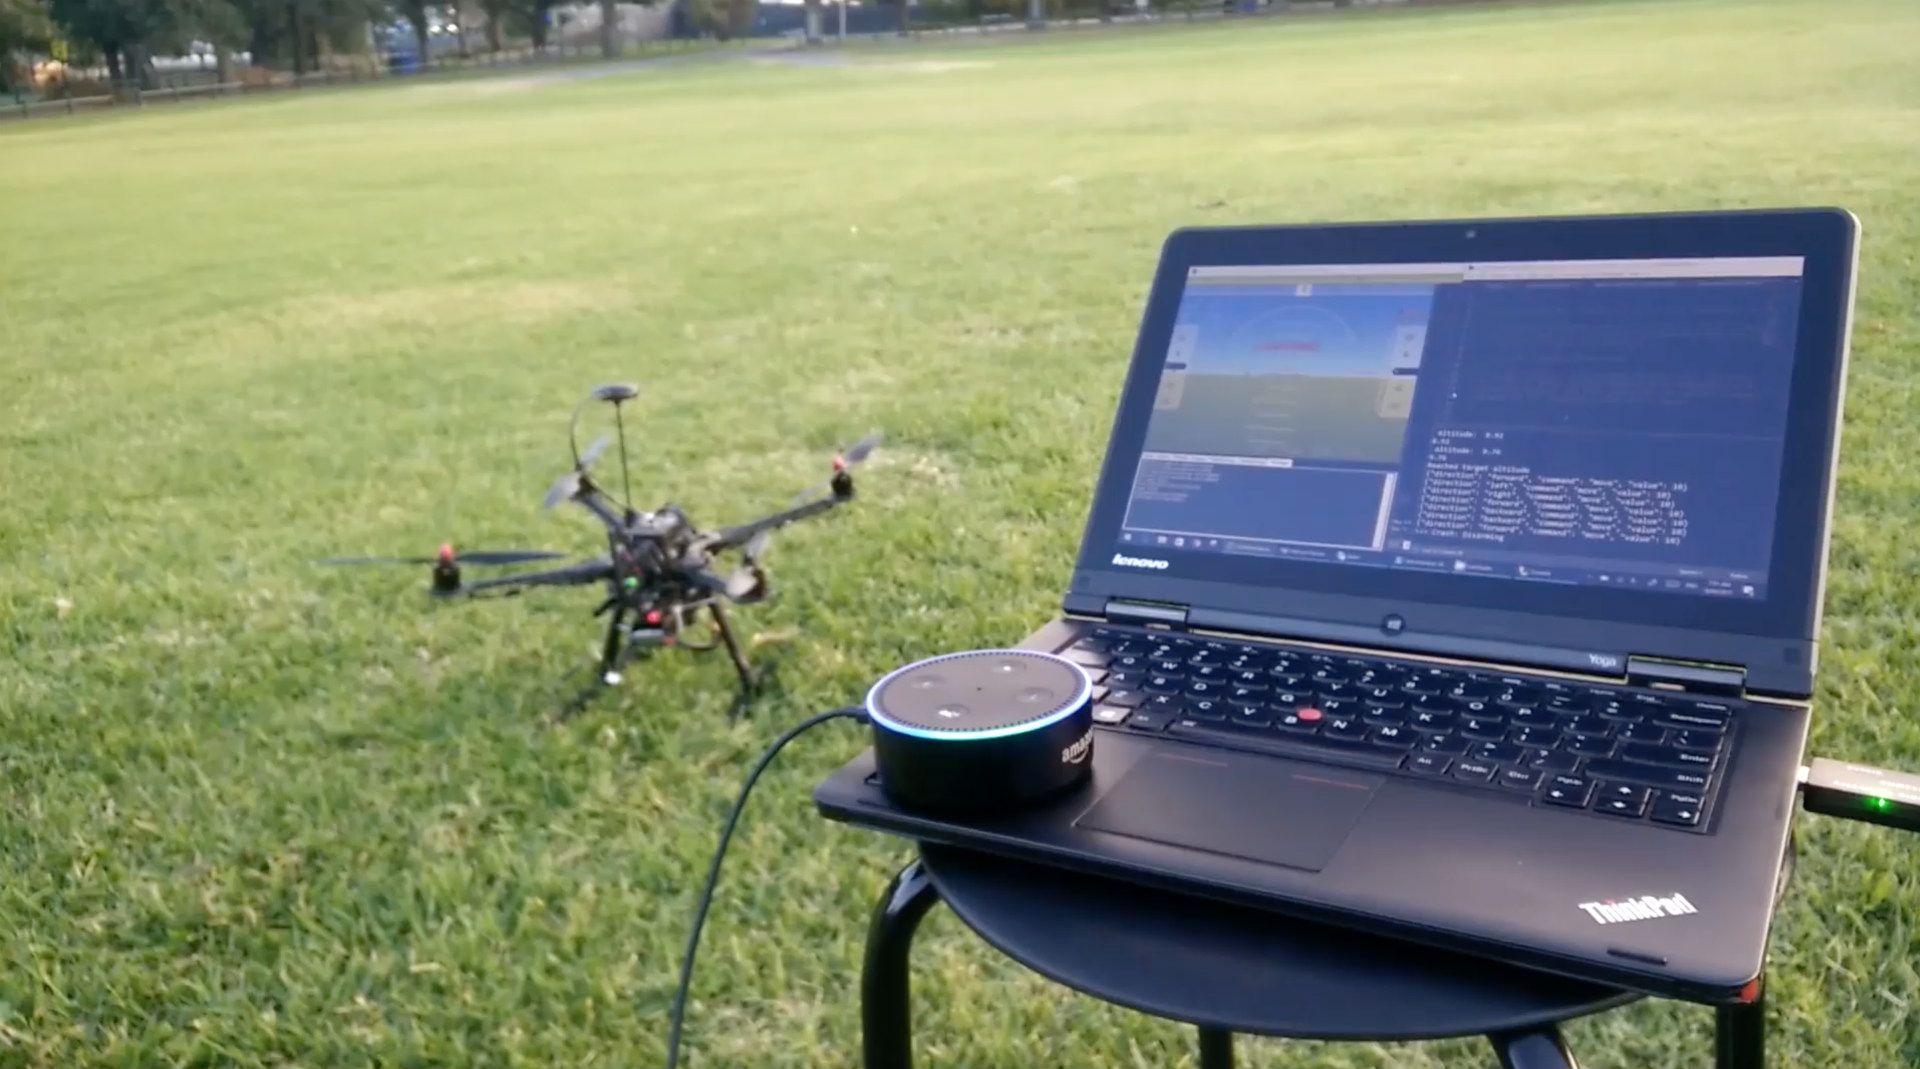 drone and amazon echo next to a laptop